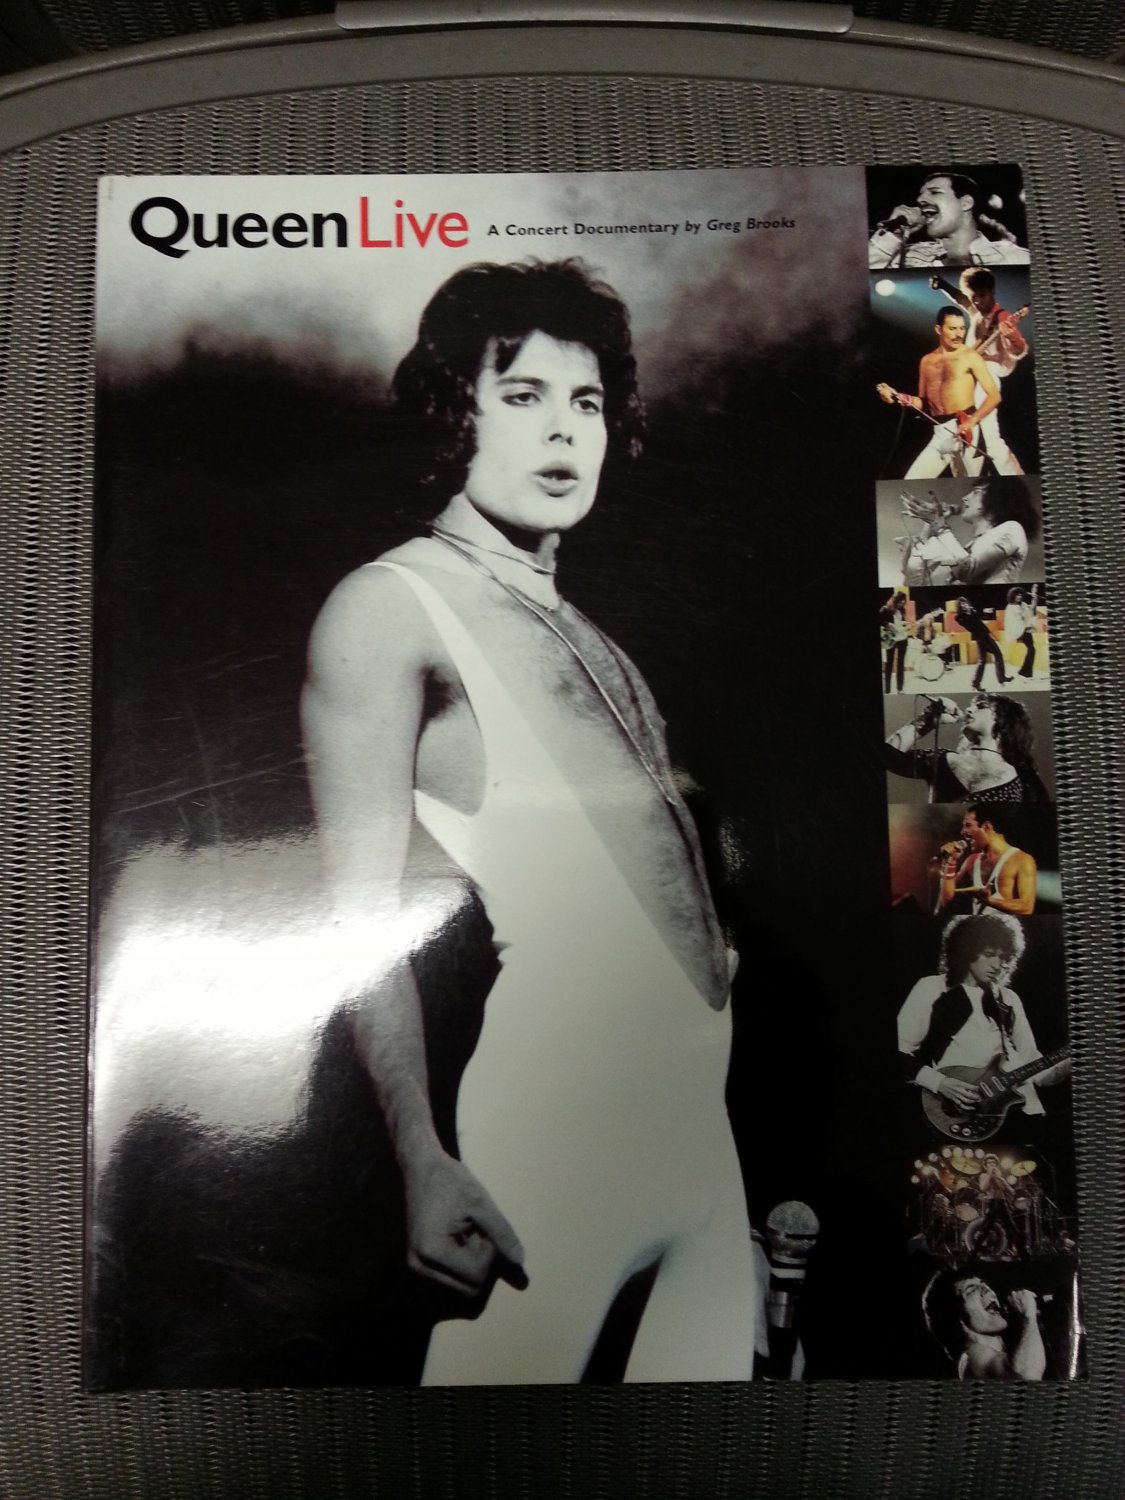 Queen Live: A Concert Documentary Paperback by Greg Brooks in EXCELLENT condition!